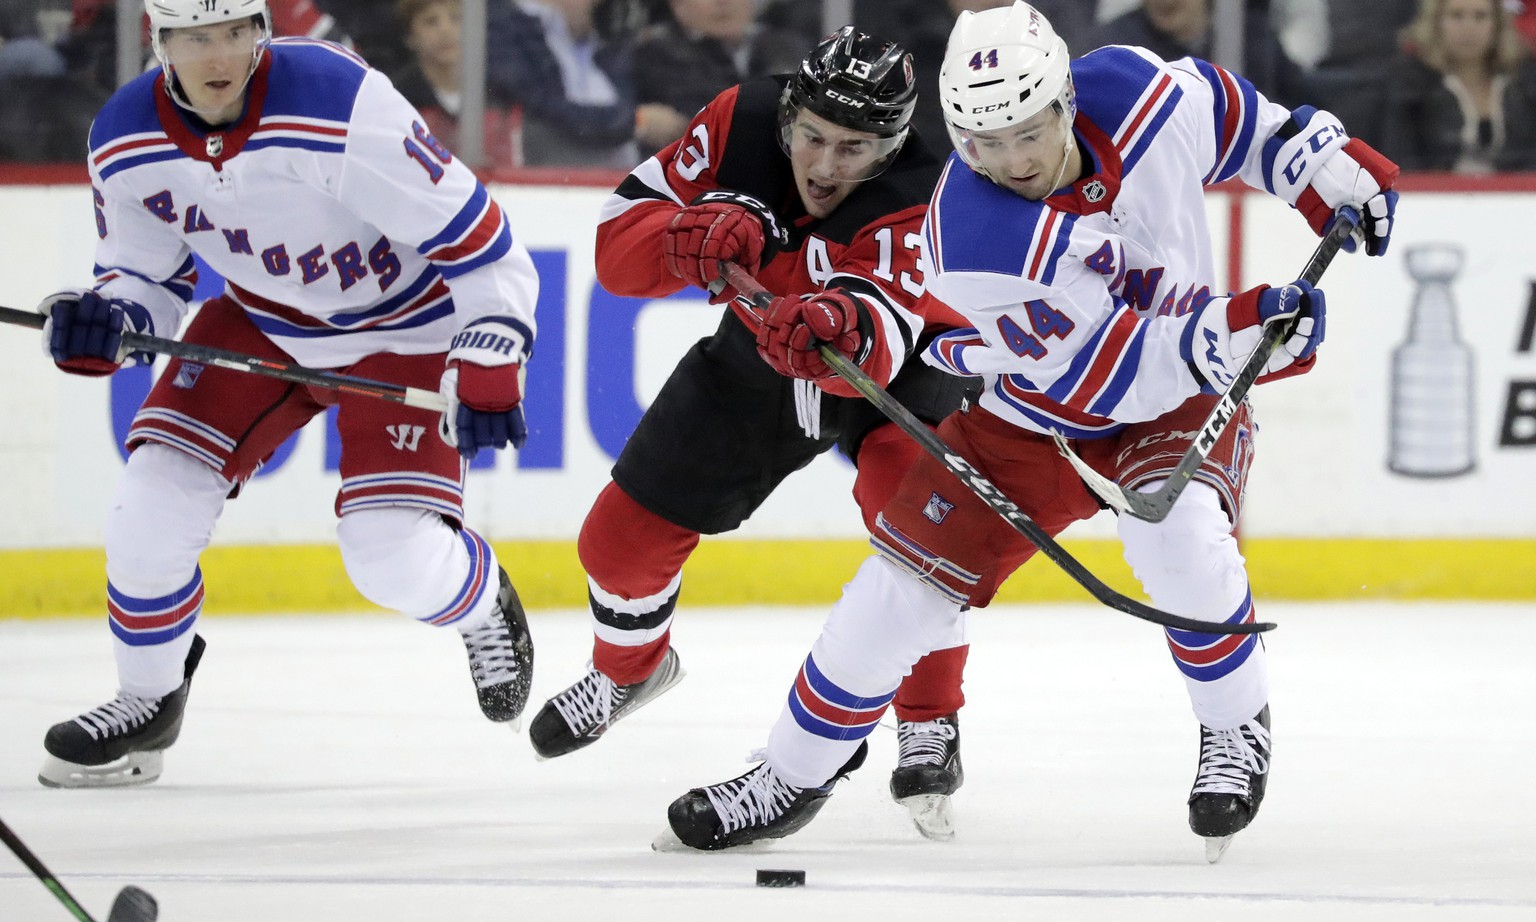 New Jersey Devils center Nico Hischier (13), of Switzerland, competes for the puck with New York Rangers defenseman Neal Pionk (44) during the third period of an NHL hockey game, Monday, April 1, 2019, in Newark, N.J. The Devils won 4-2. (AP Photo/Julio Cortez)